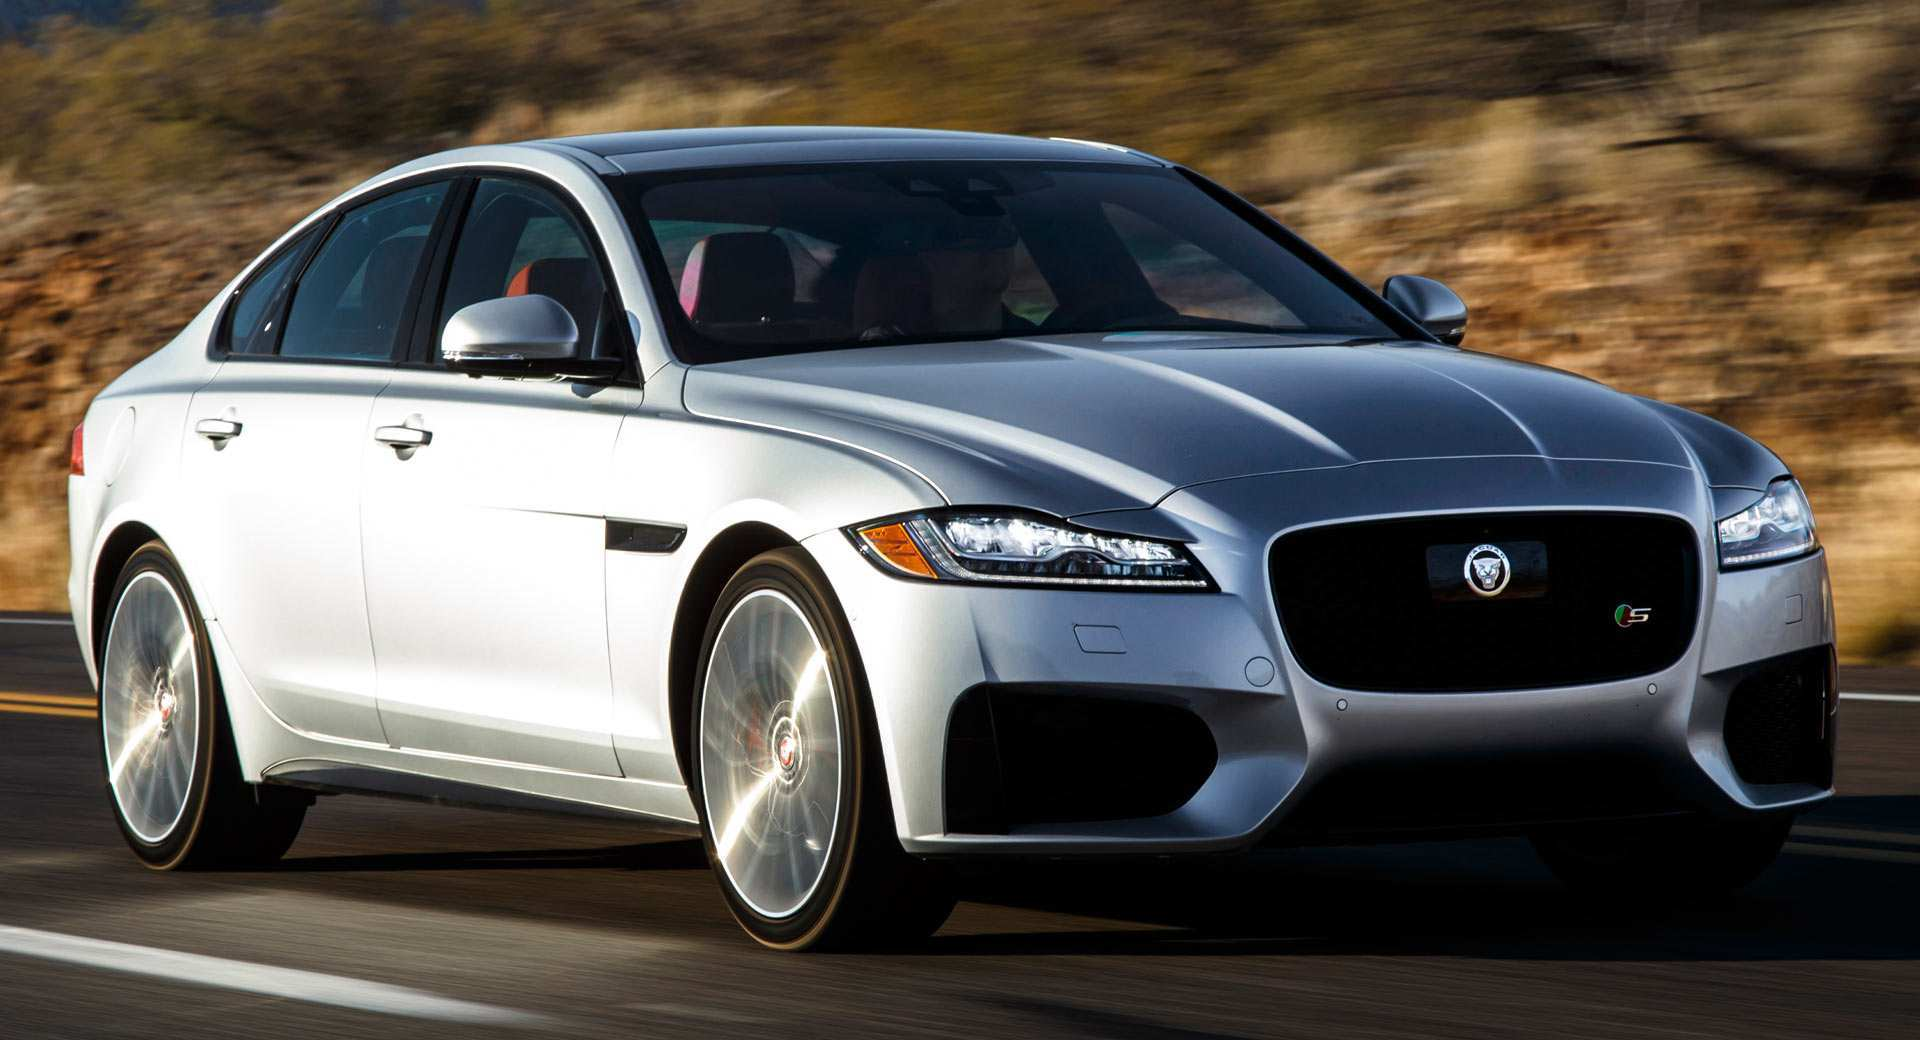 66 All New 2020 Jaguar Xjl Portfolio Model